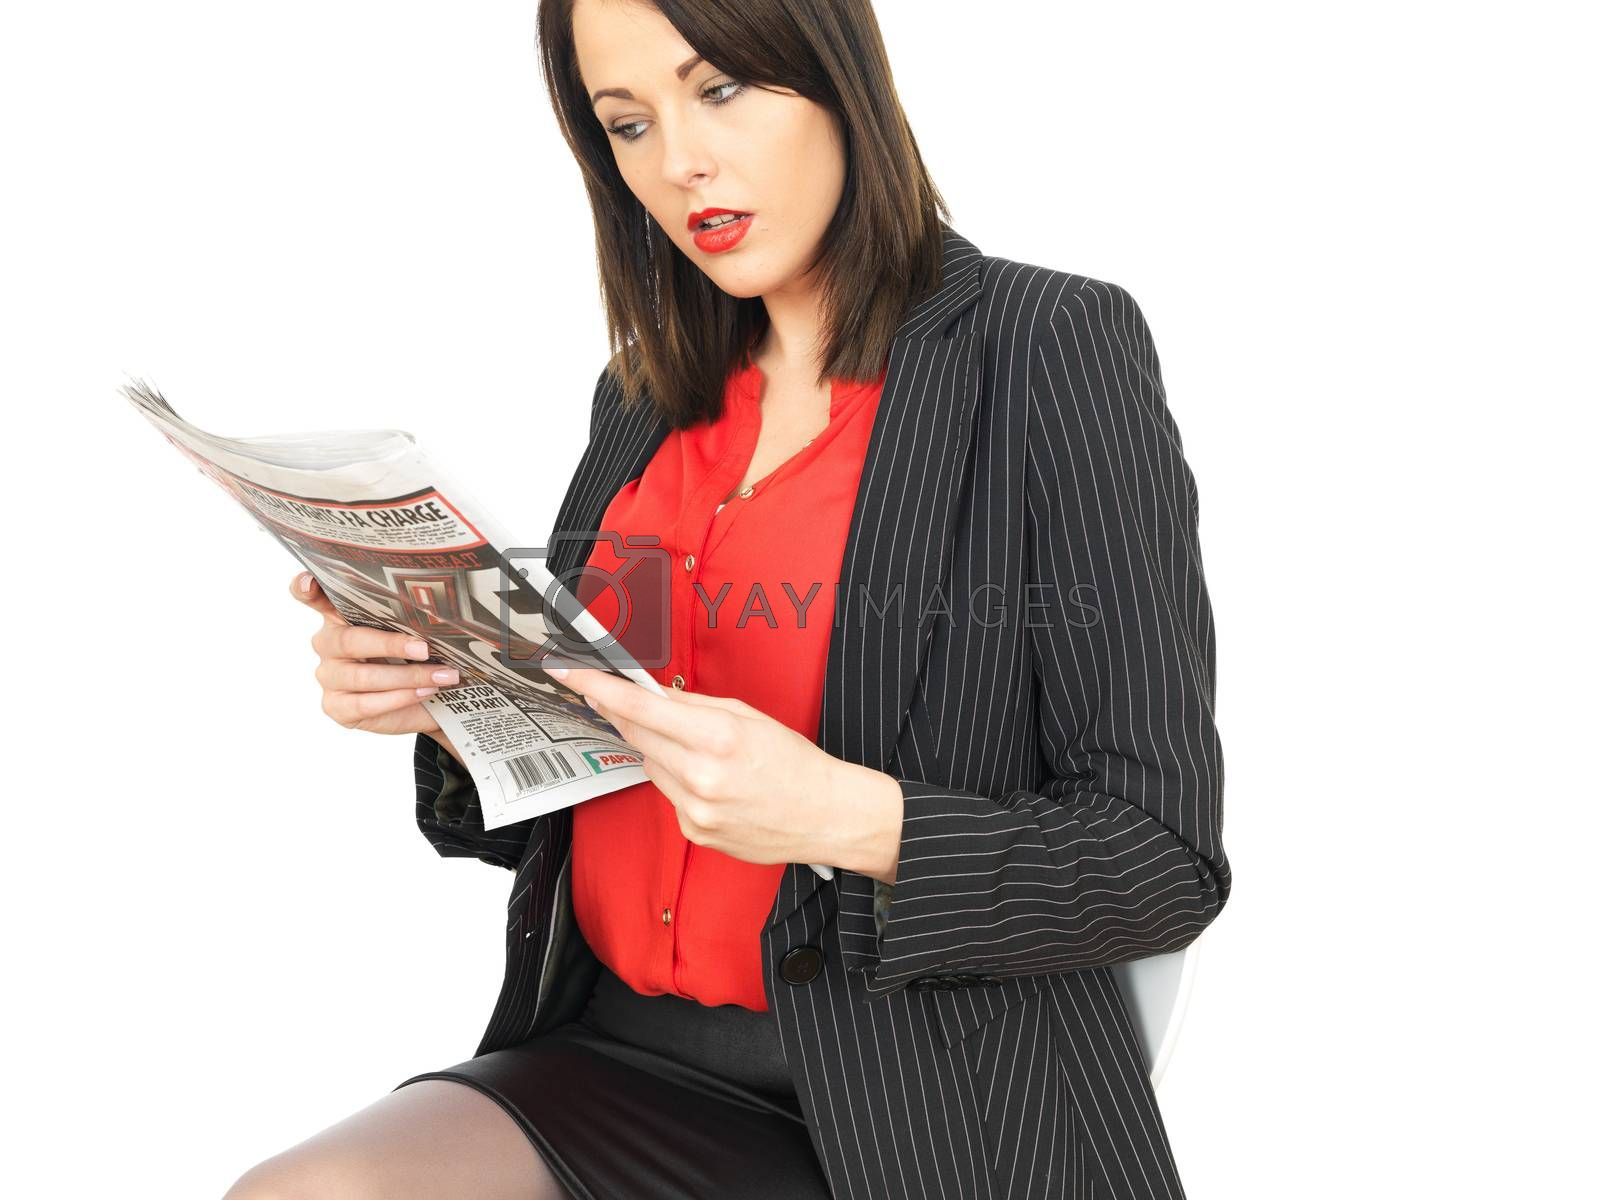 Young Business Woman Reading a Newspaper by Whiteboxmedia